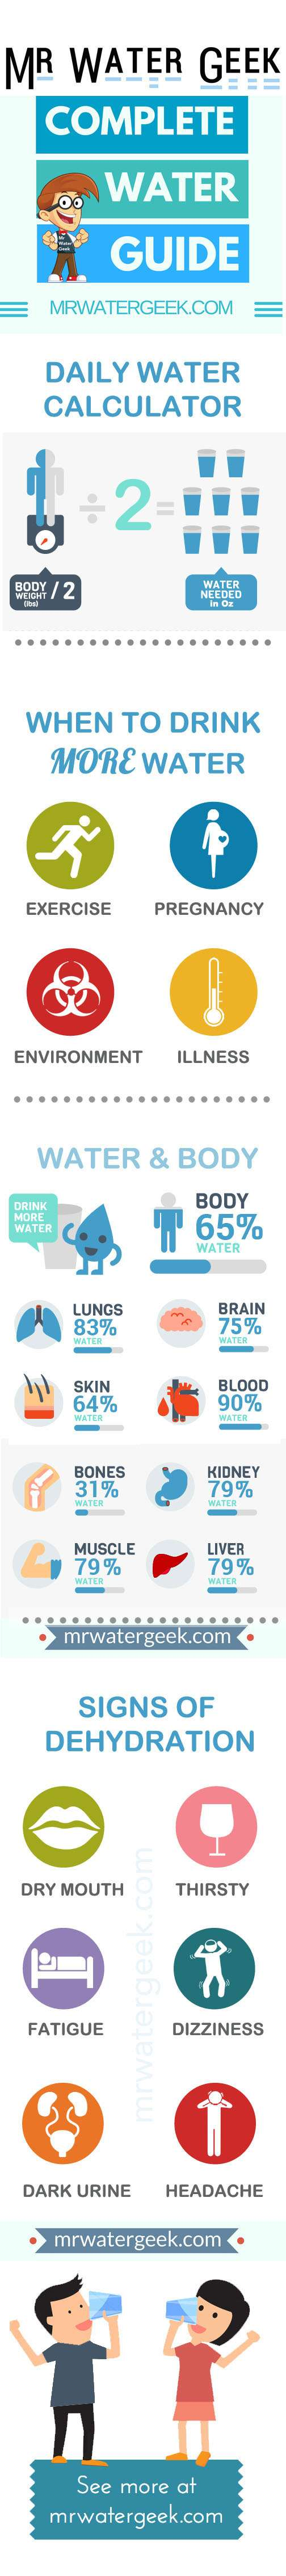 Long Form Drink More Water Infographic